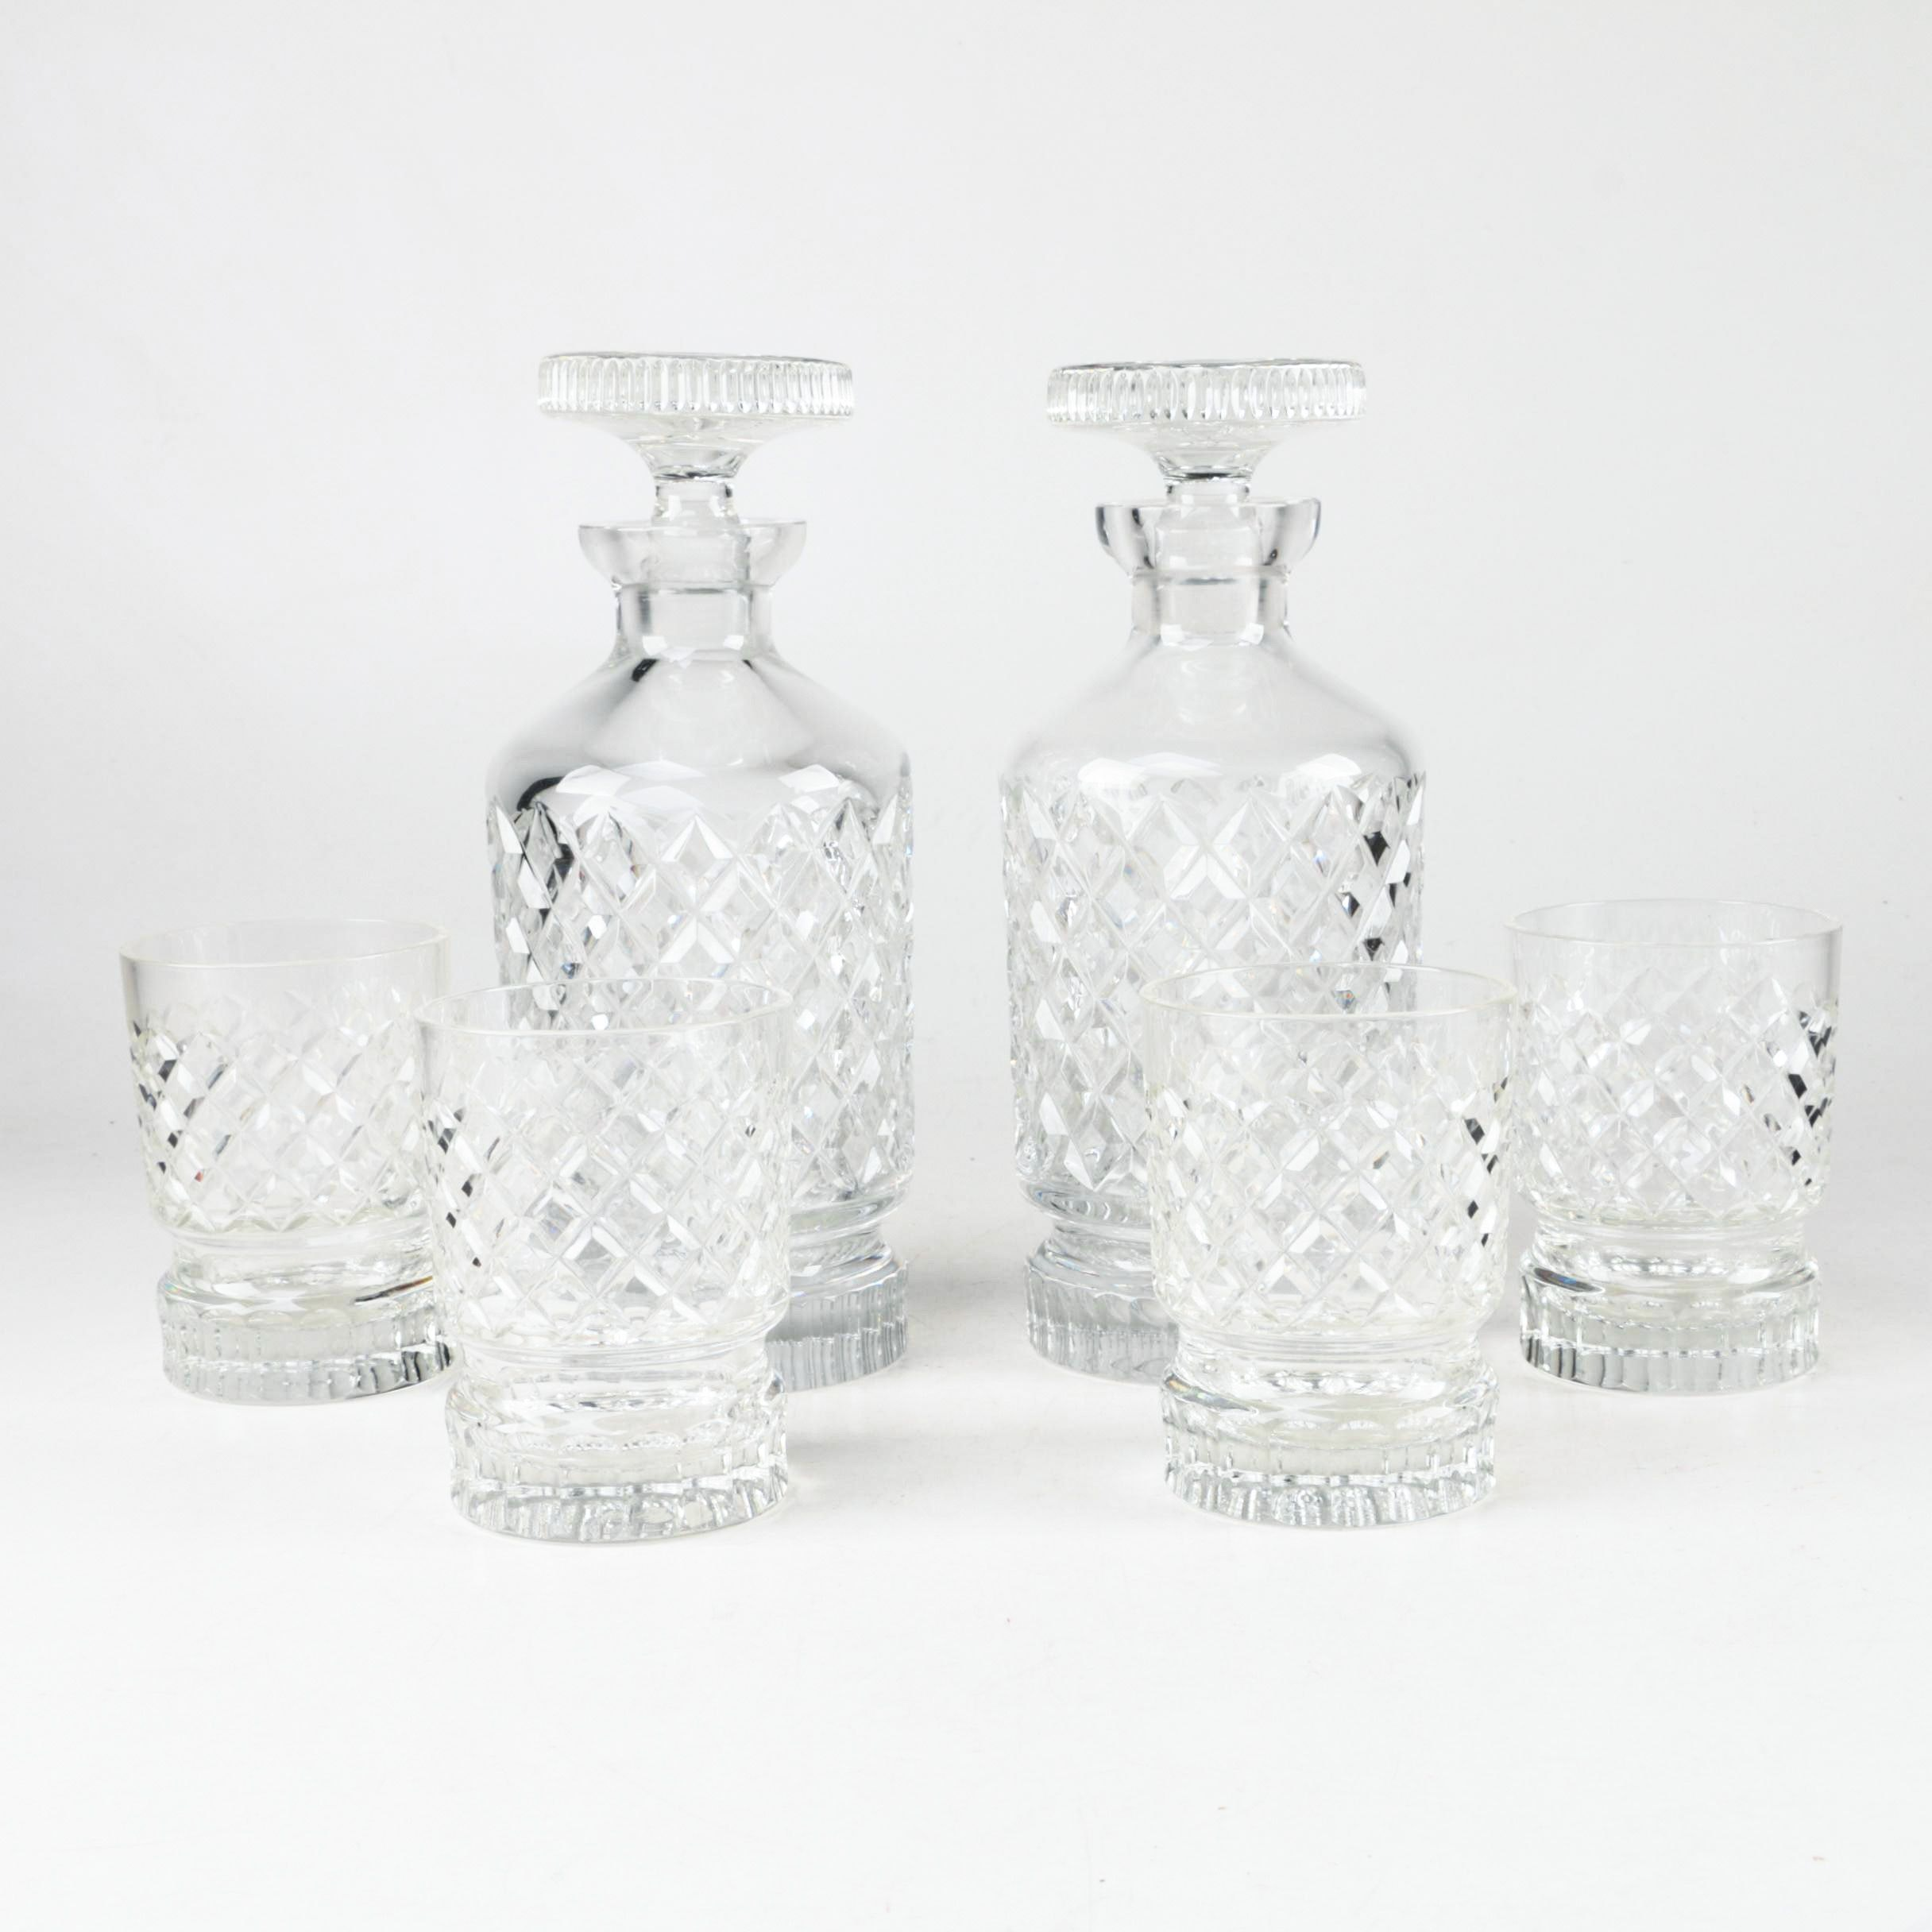 Pressed Glass Decanters and Rocks Glasses